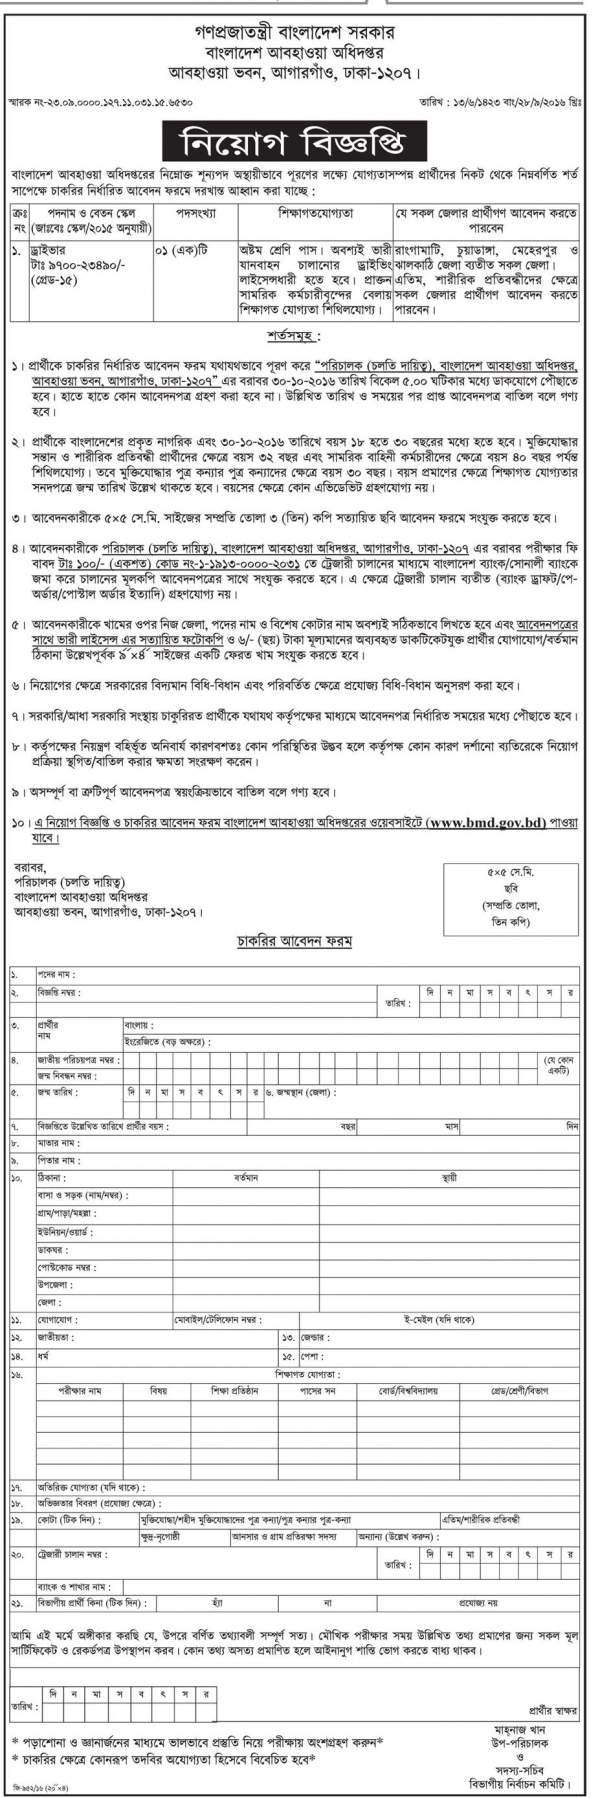 Meteorological Department job circular 2016